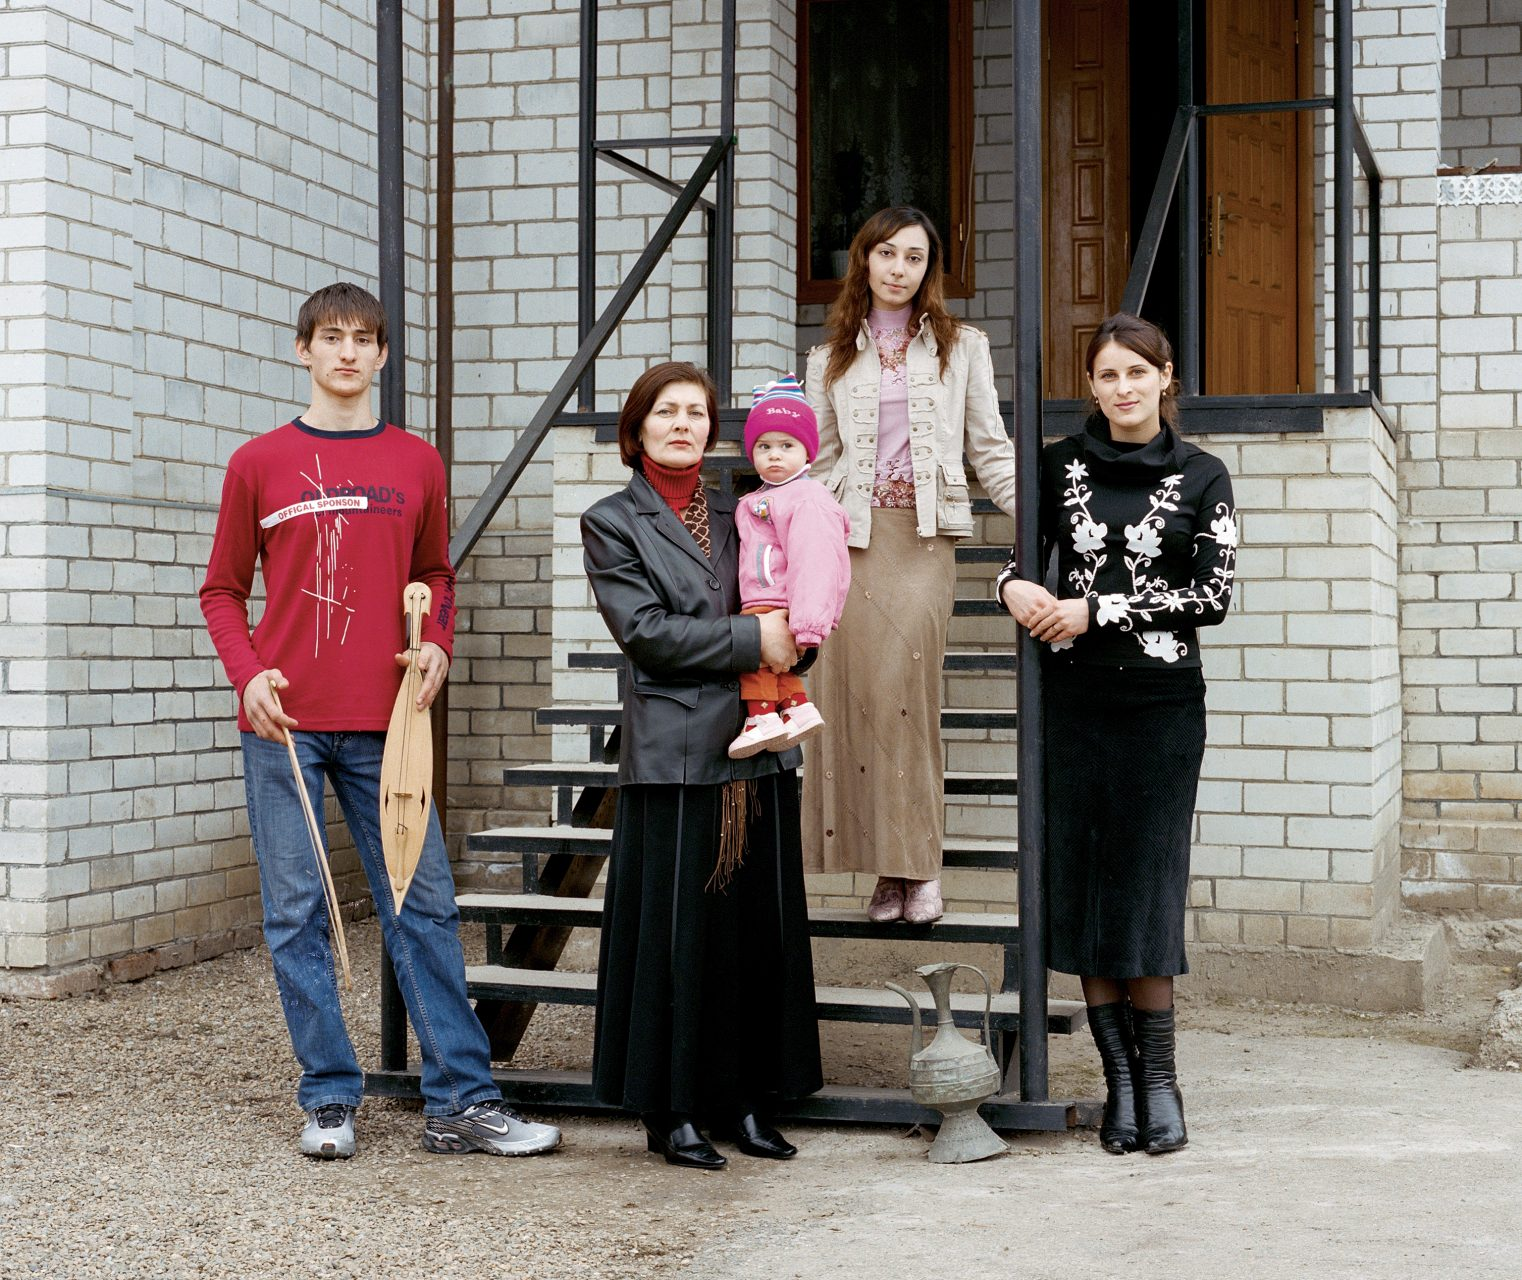 Russkie #82, c-print on dibond,100 x 125 cm, 2007